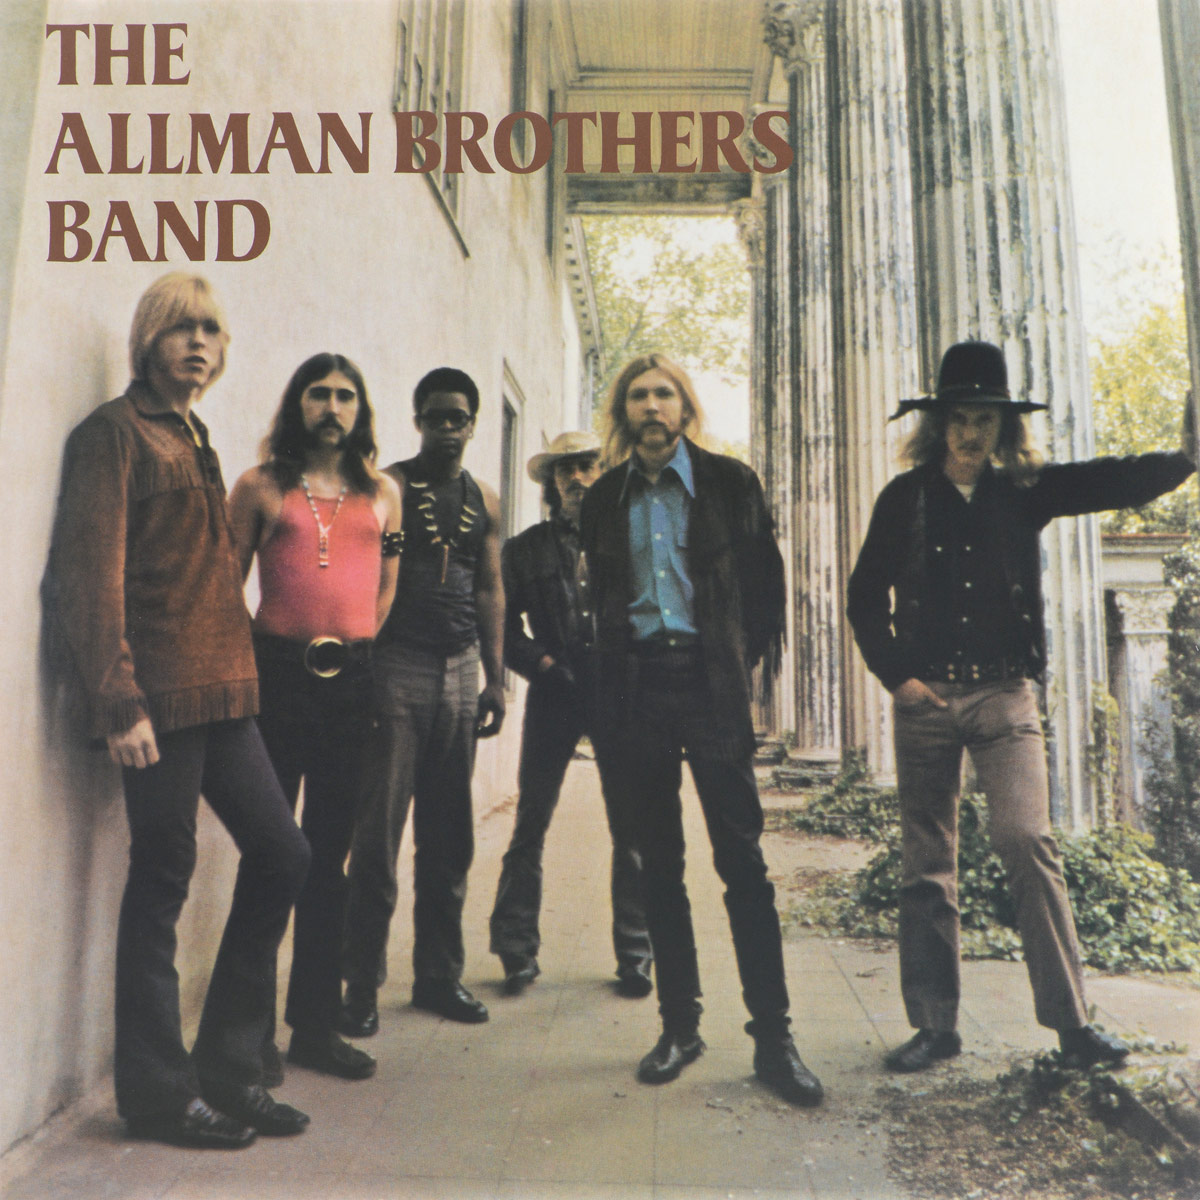 The Allman Brothers Band The Allman Brothers Band. The Allman Brothers Band (2 LP) band sony